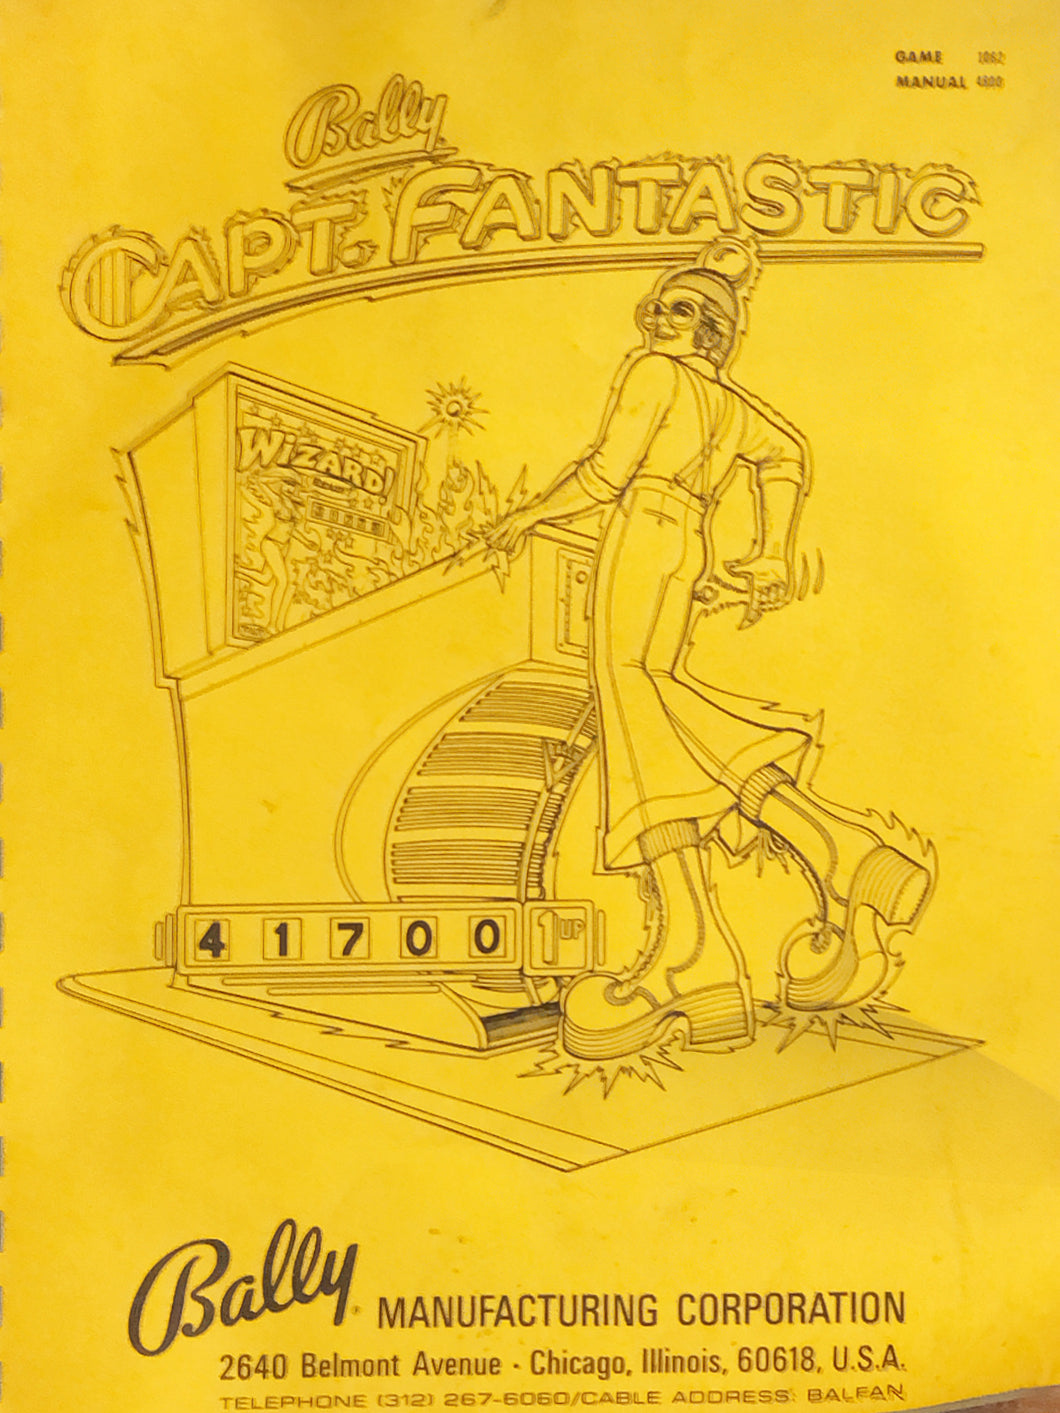 Captain Fanstastic Complete Pinball Manual